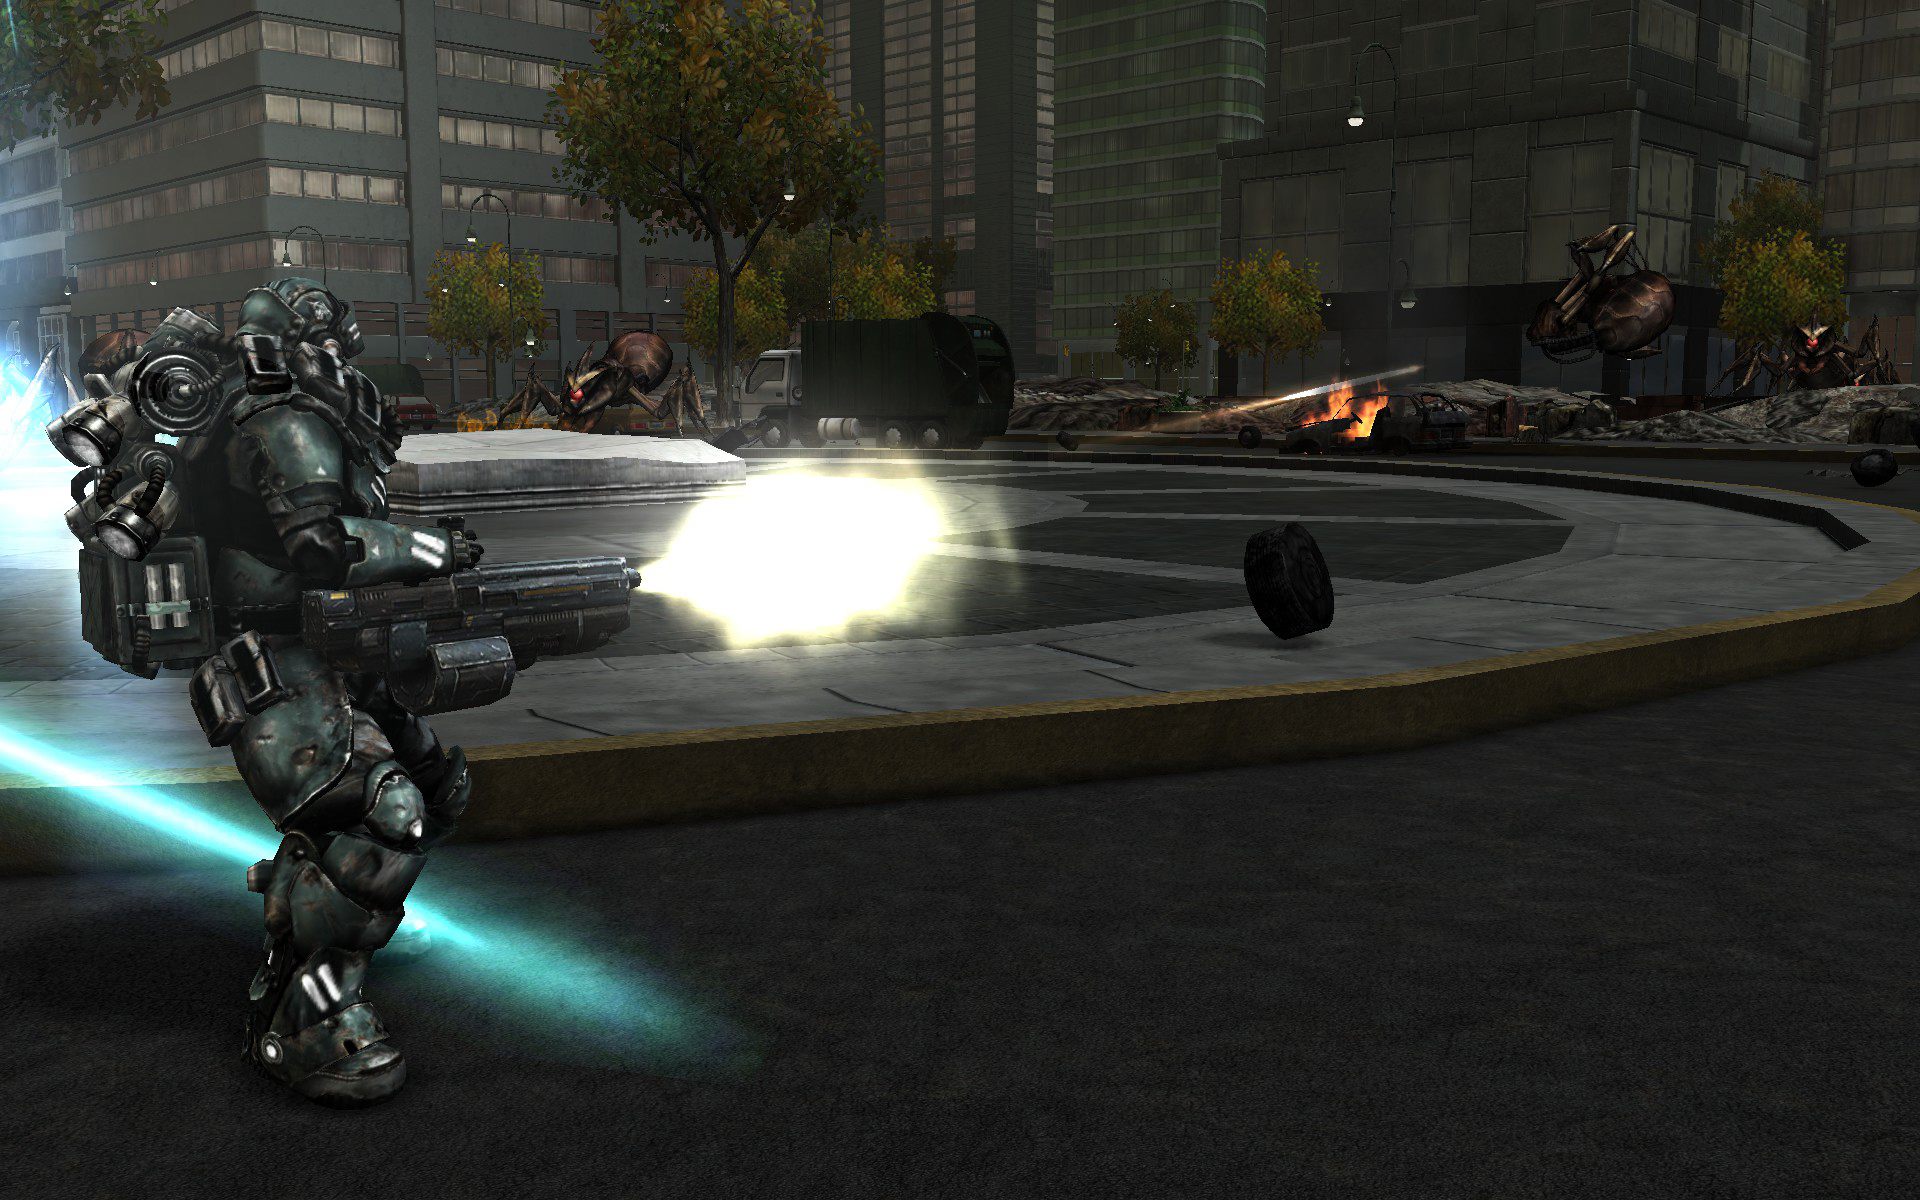 Earth Defense Force Battle Armor Weapon Chest screenshot